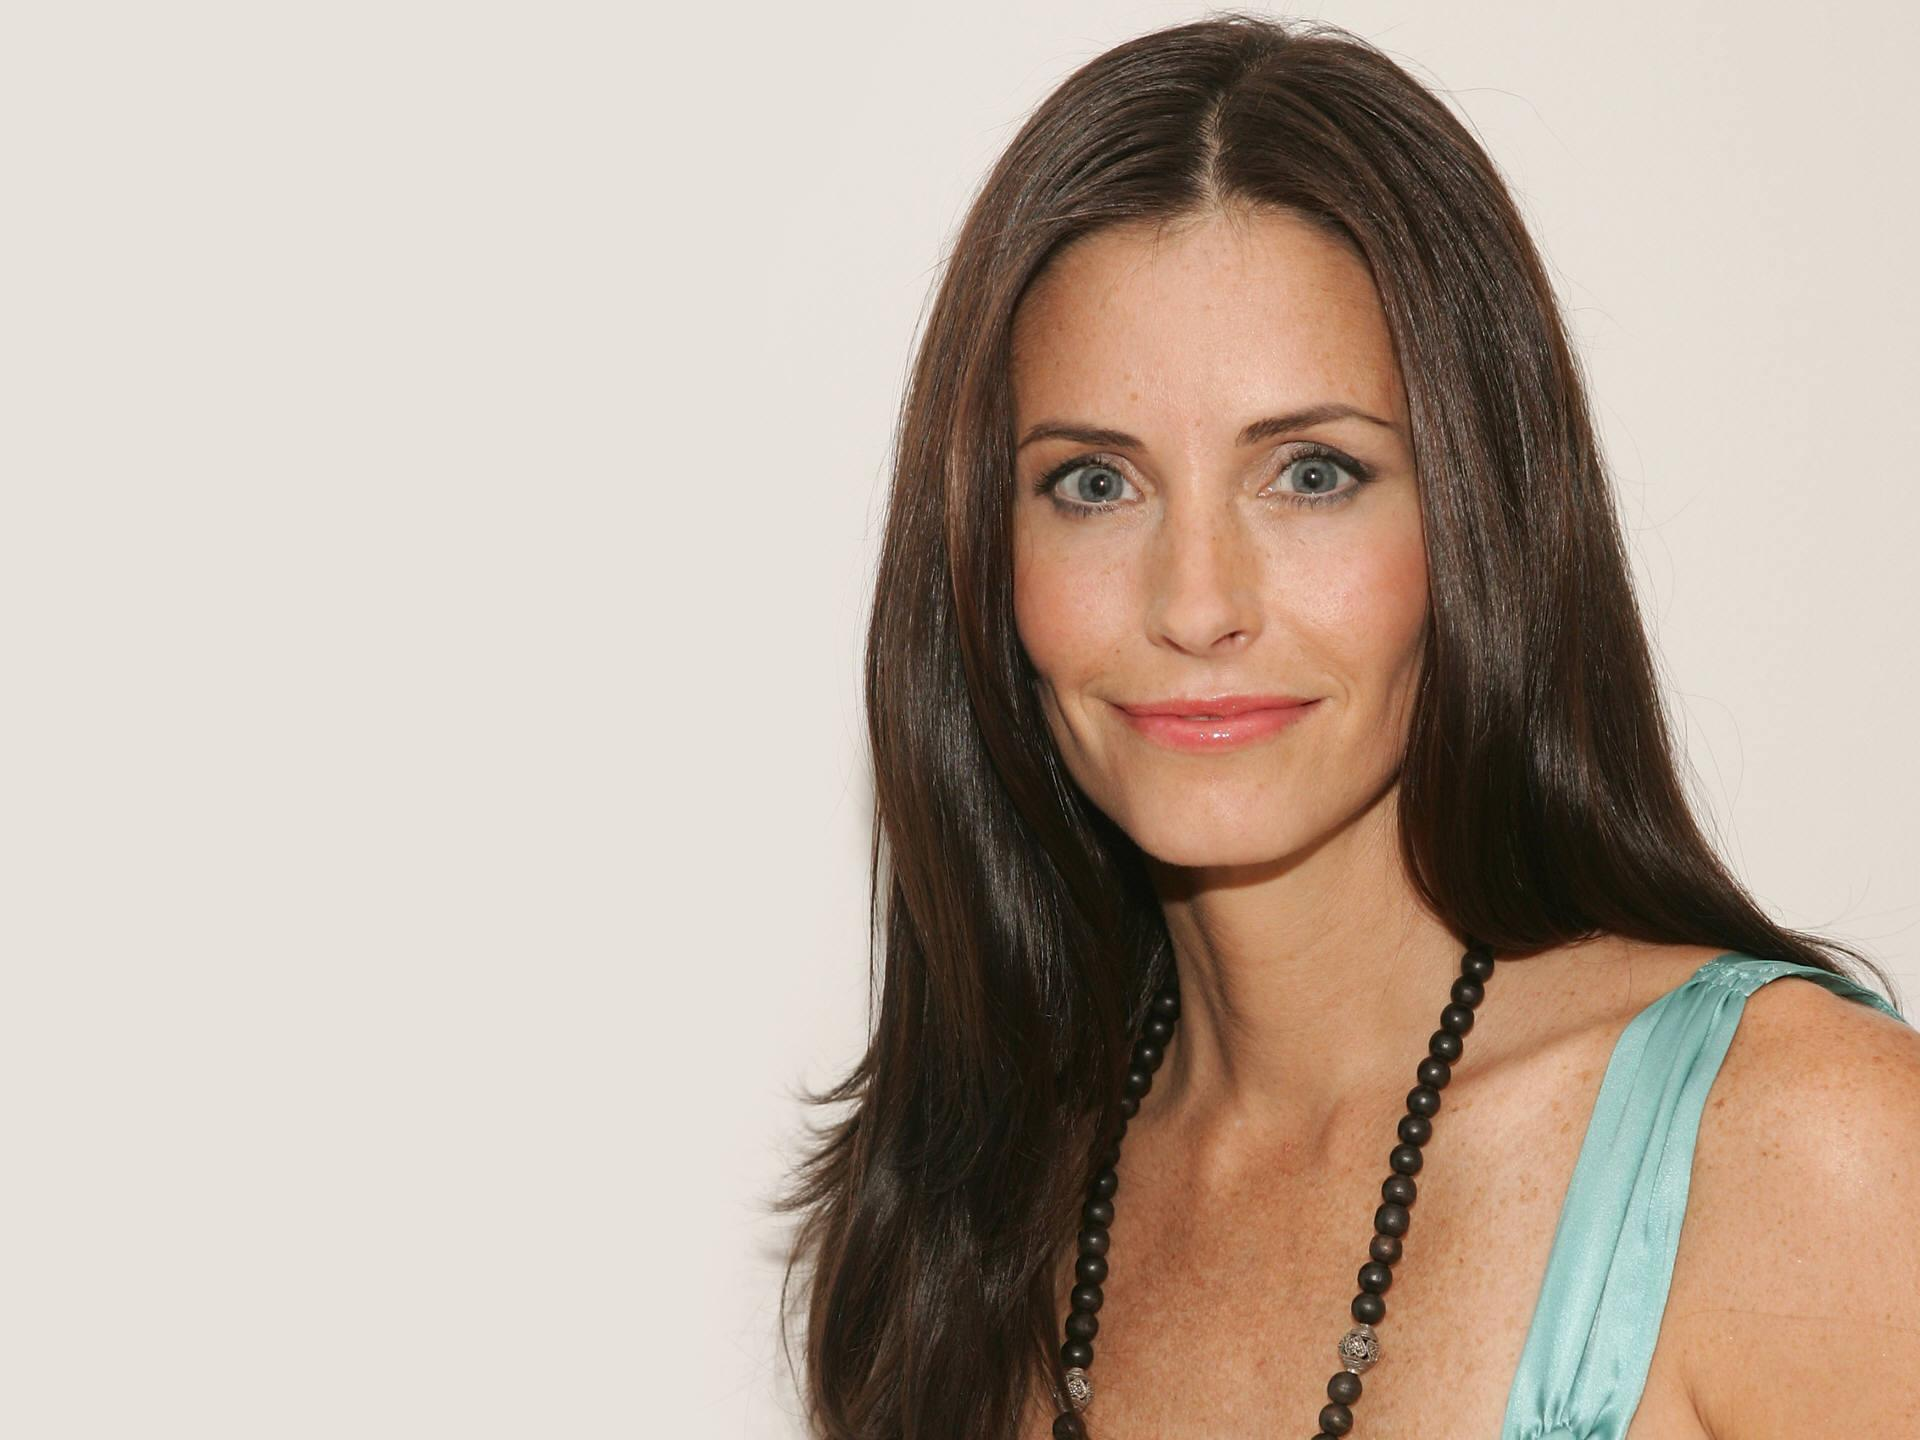 1920x1440 - Courtney Cox Wallpapers 34